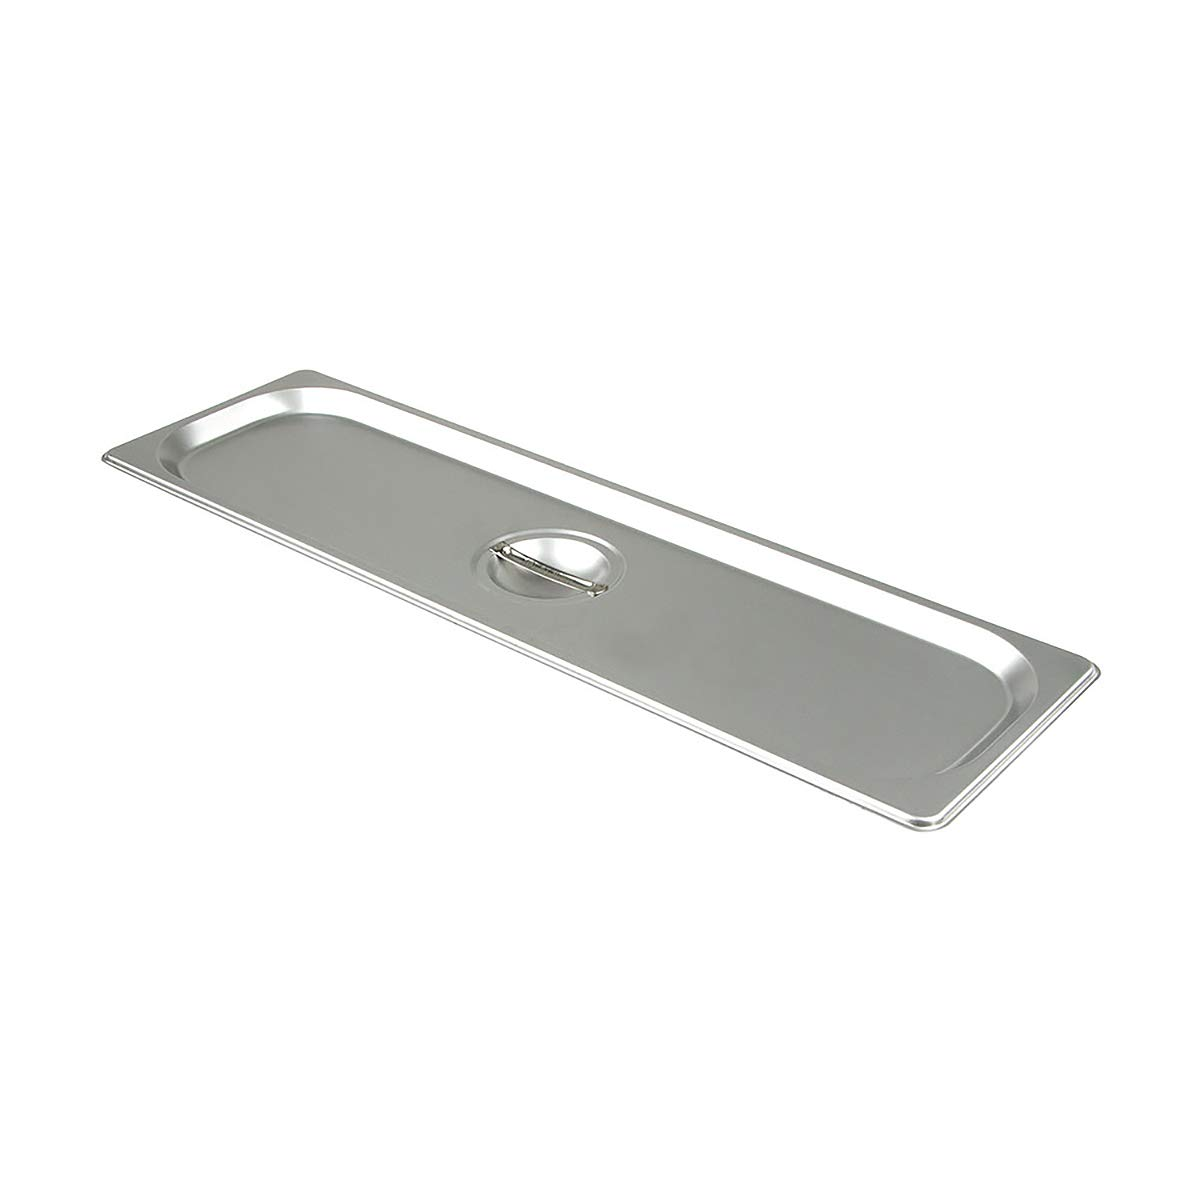 Update International STP-50LSC S/Steam Table Pan Cover, Half Size Long Pan, 18-8 Stainless Steel AISI-304